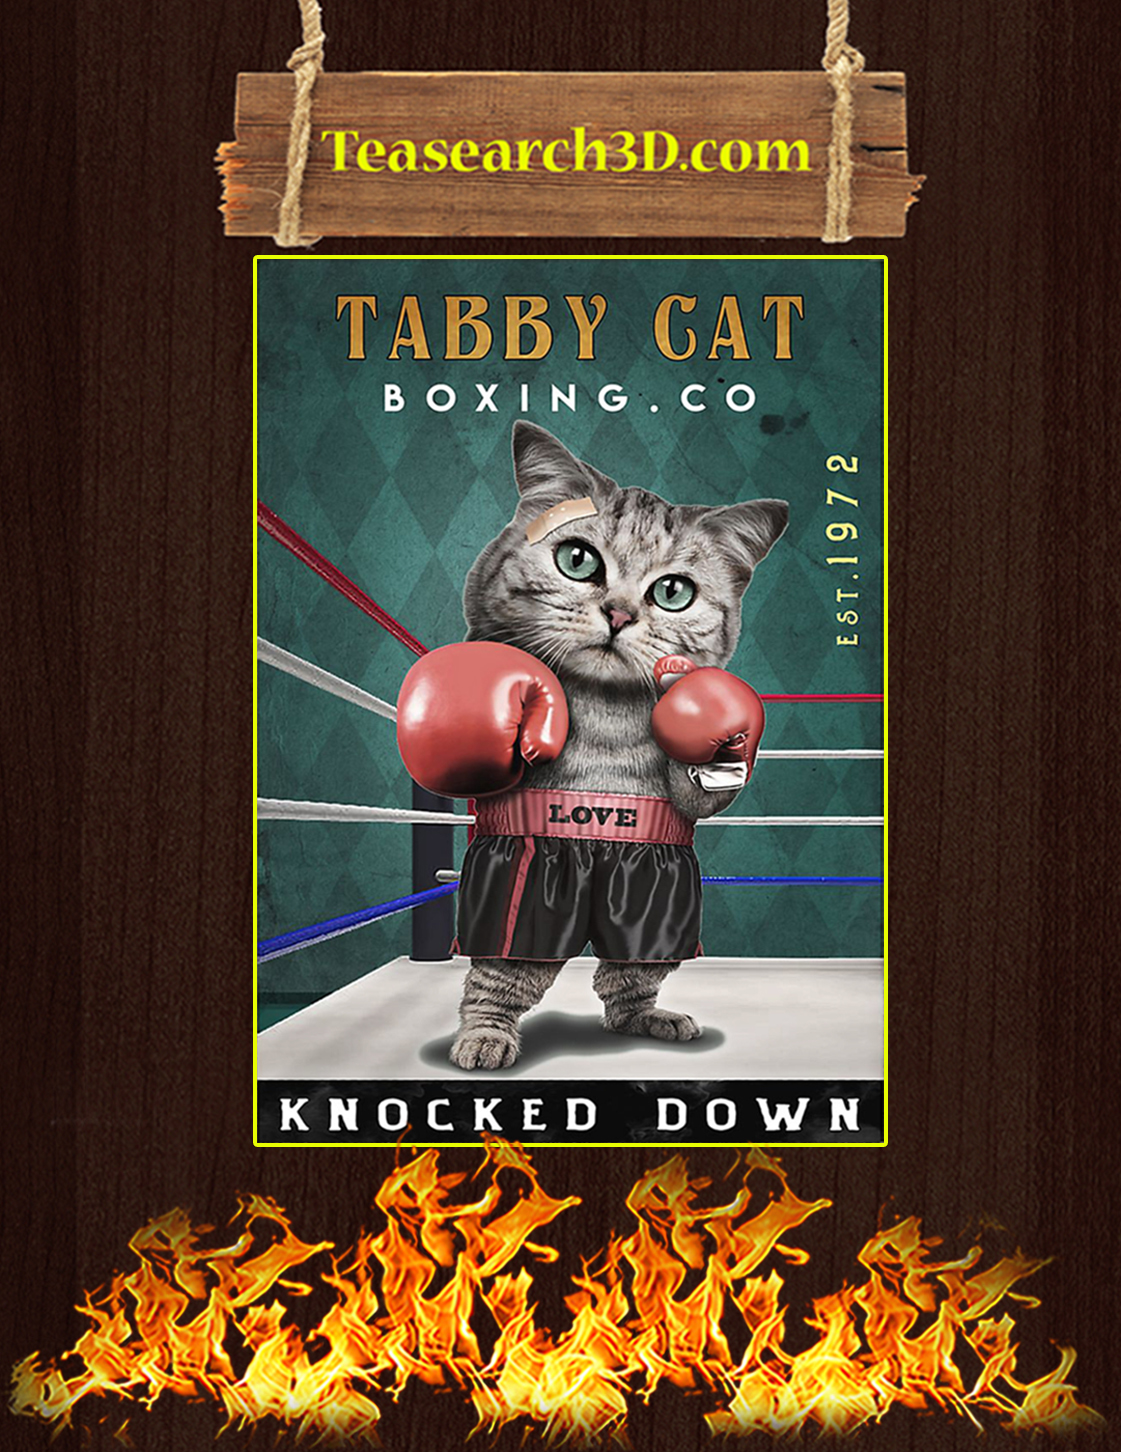 Tabby cat boxing co knocked down poster A3